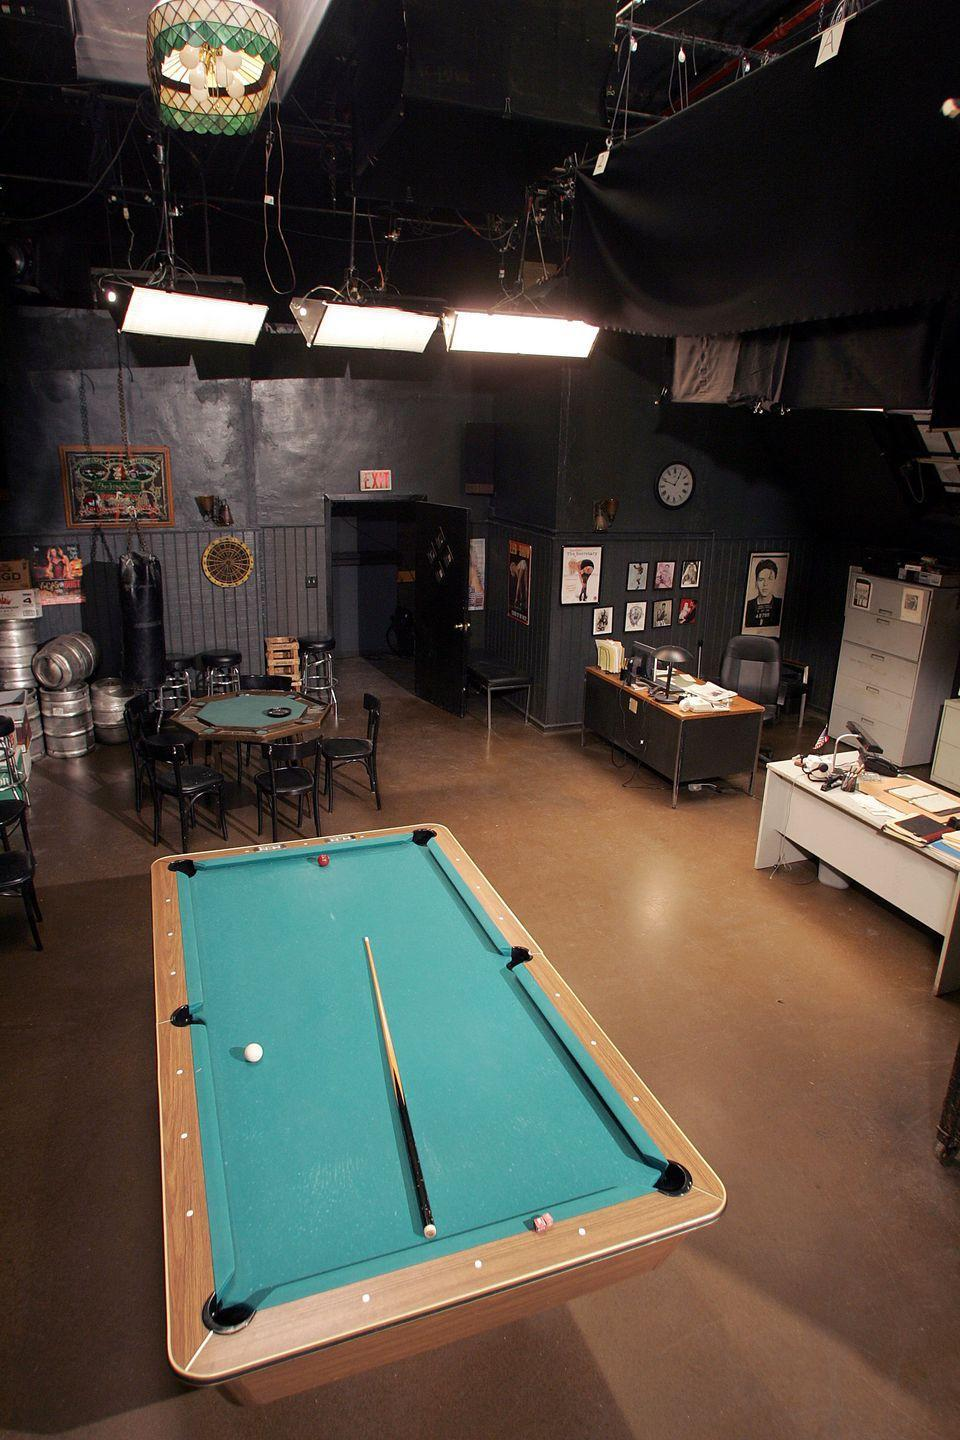 <p>The back room of the Bada Bing! served as the location for many iconic moments on the show and was shot at Silvercup Studios in Queens, New York.</p>